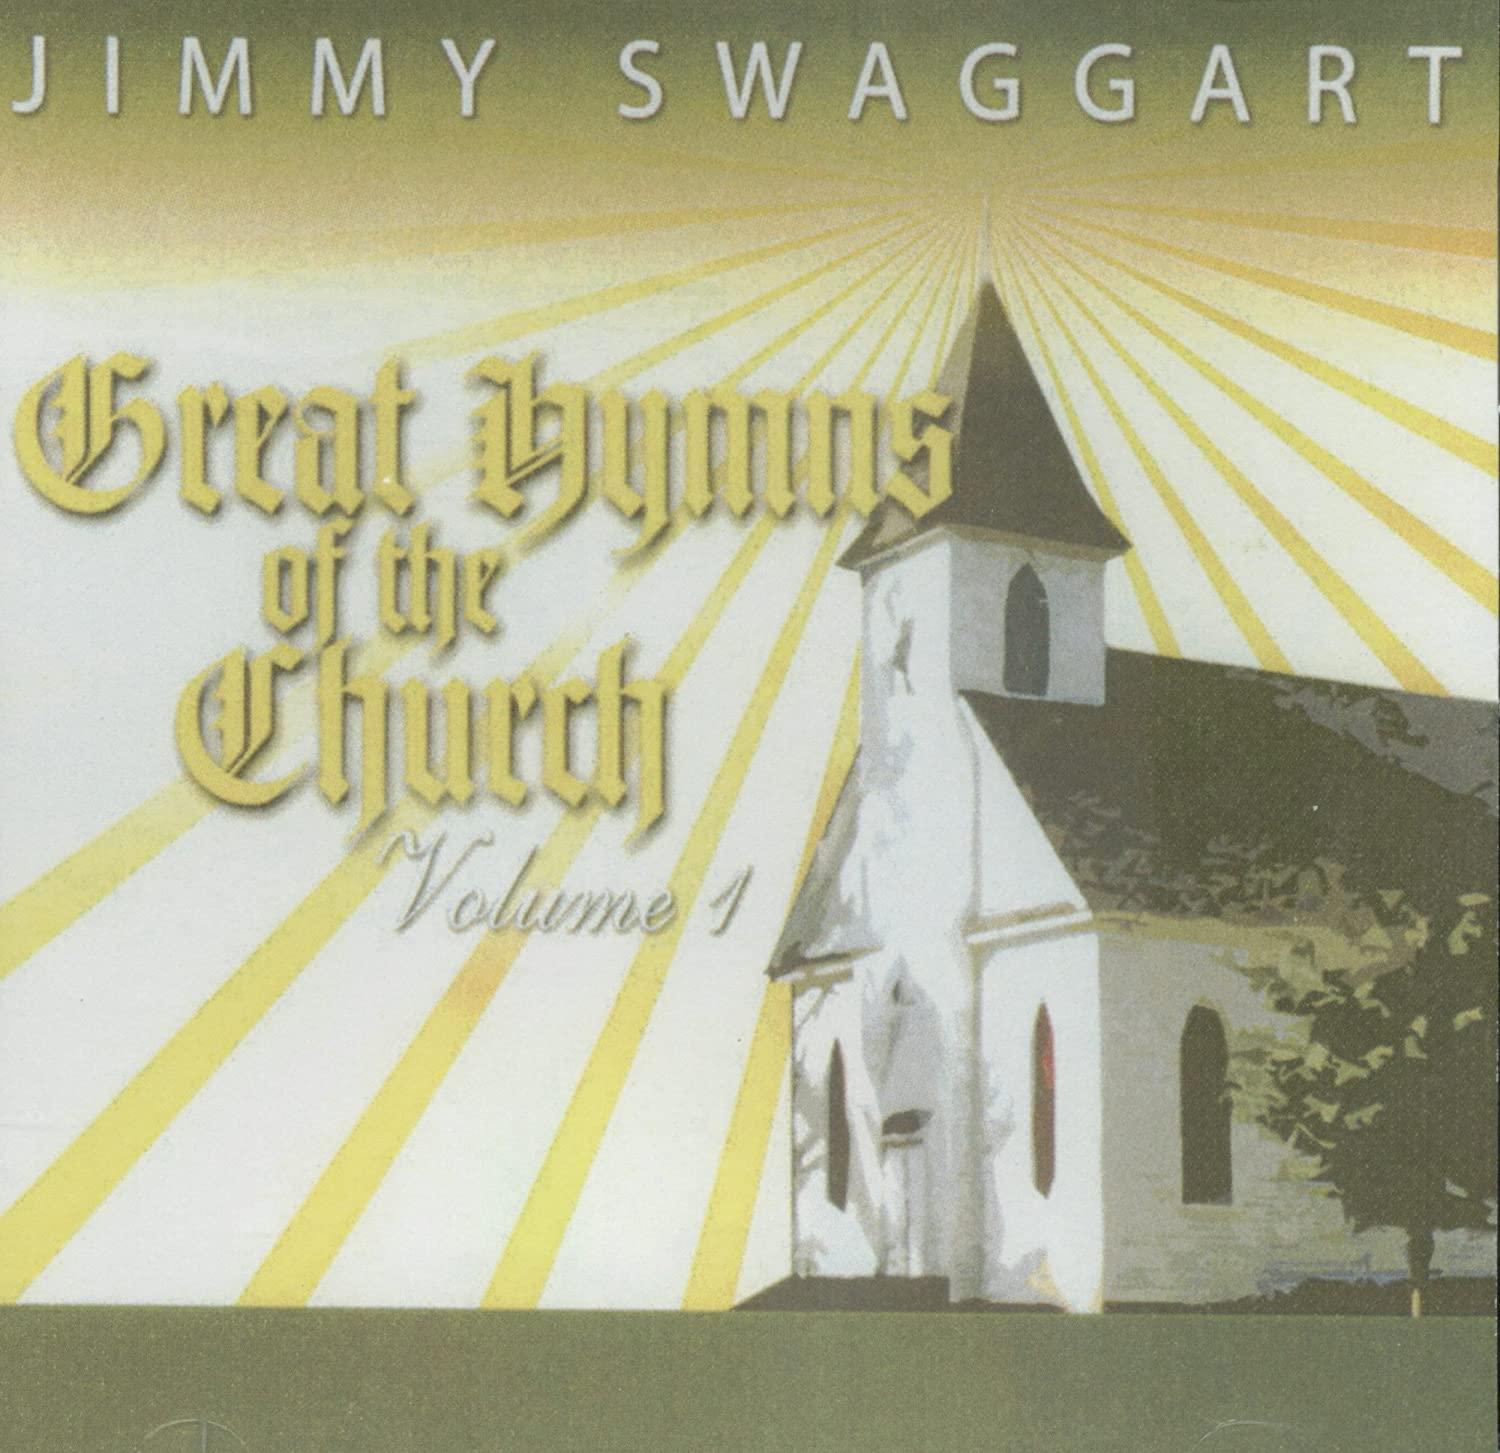 Jimmy Swaggart Great Hymns Of The Church Volume 1 - Amazon com Music